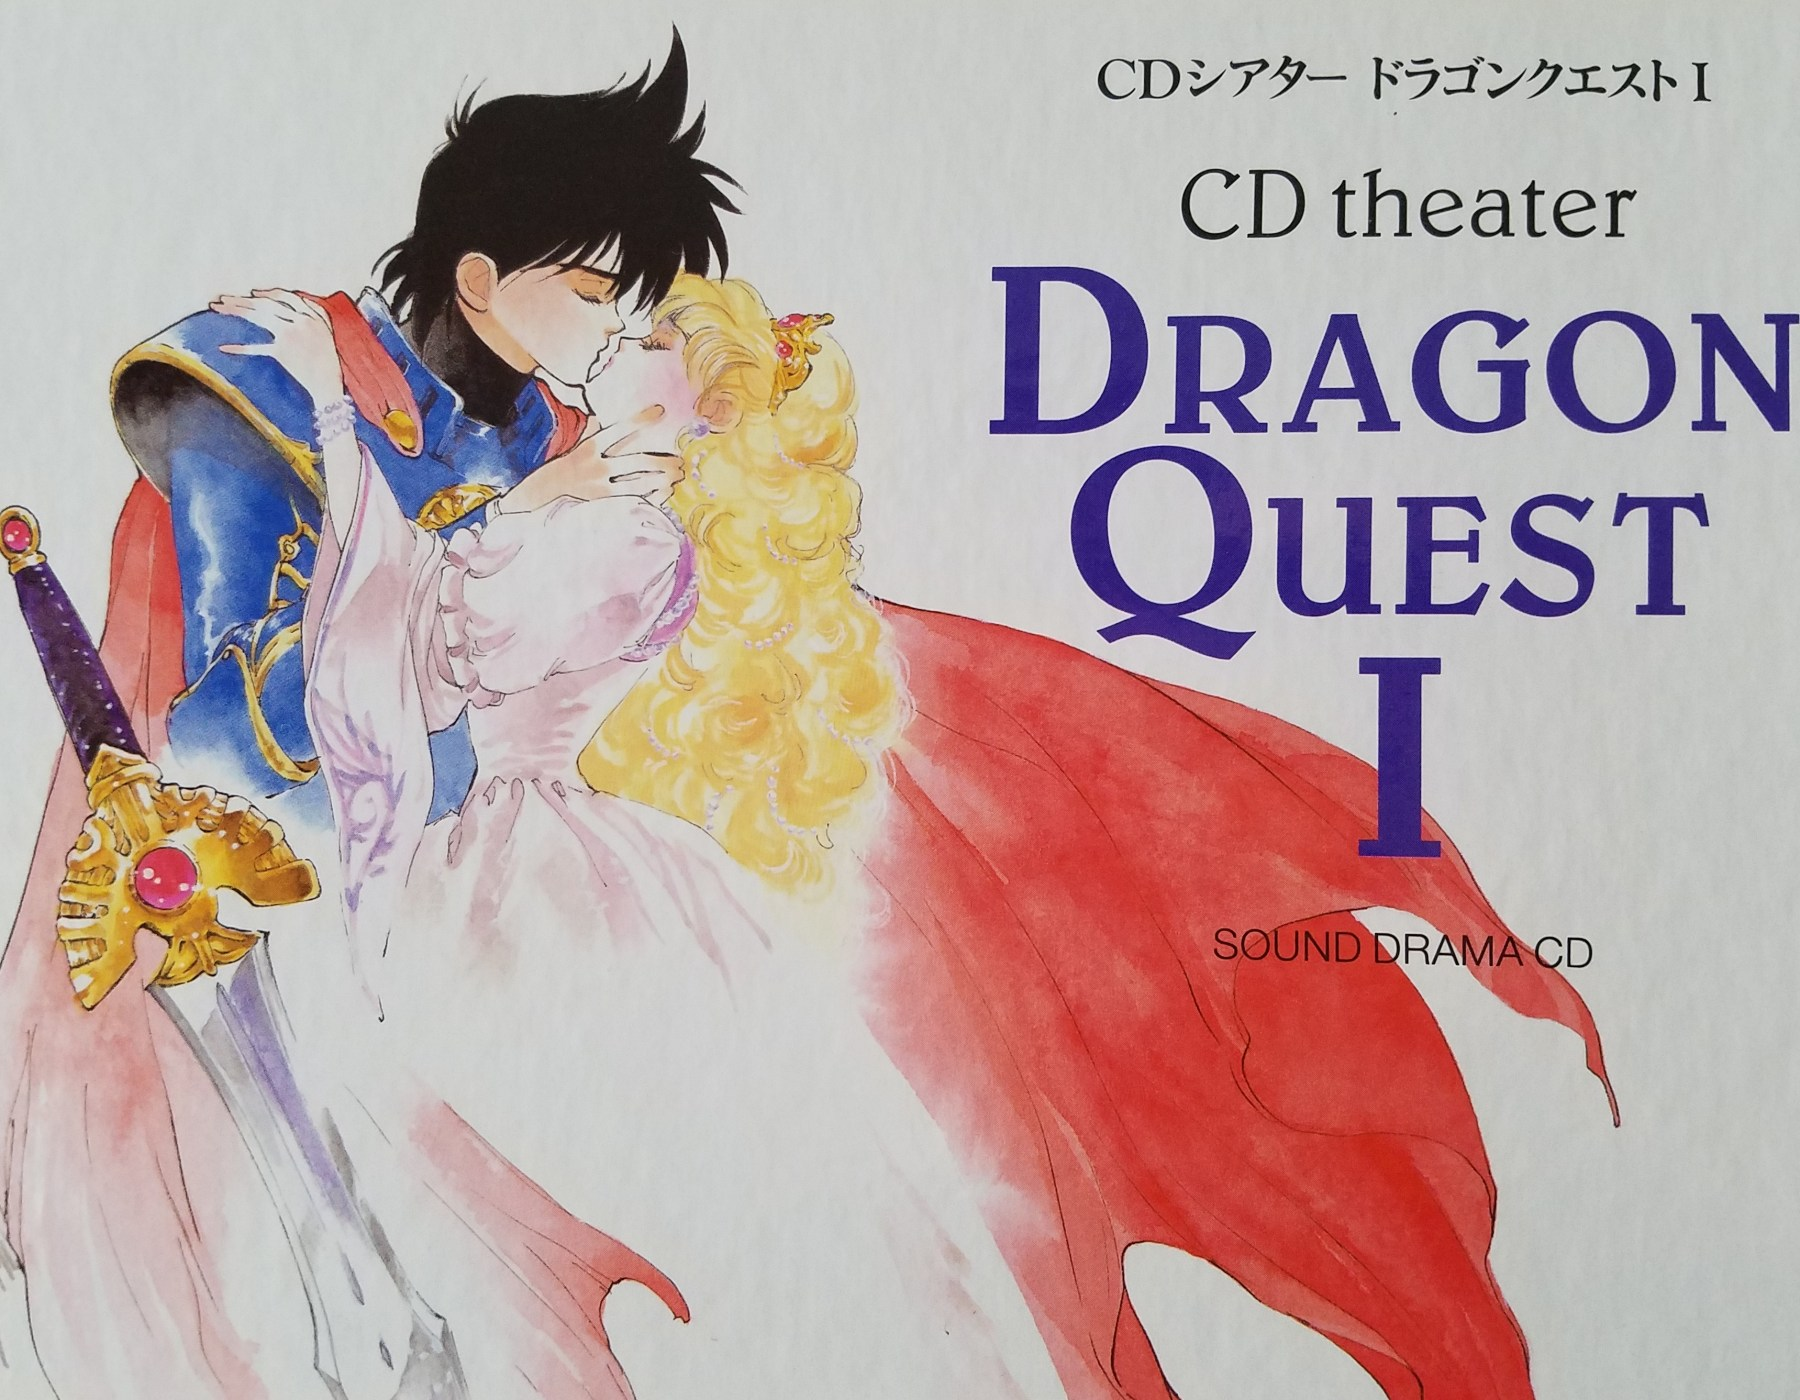 Dragon quest 1 cd theater front cover